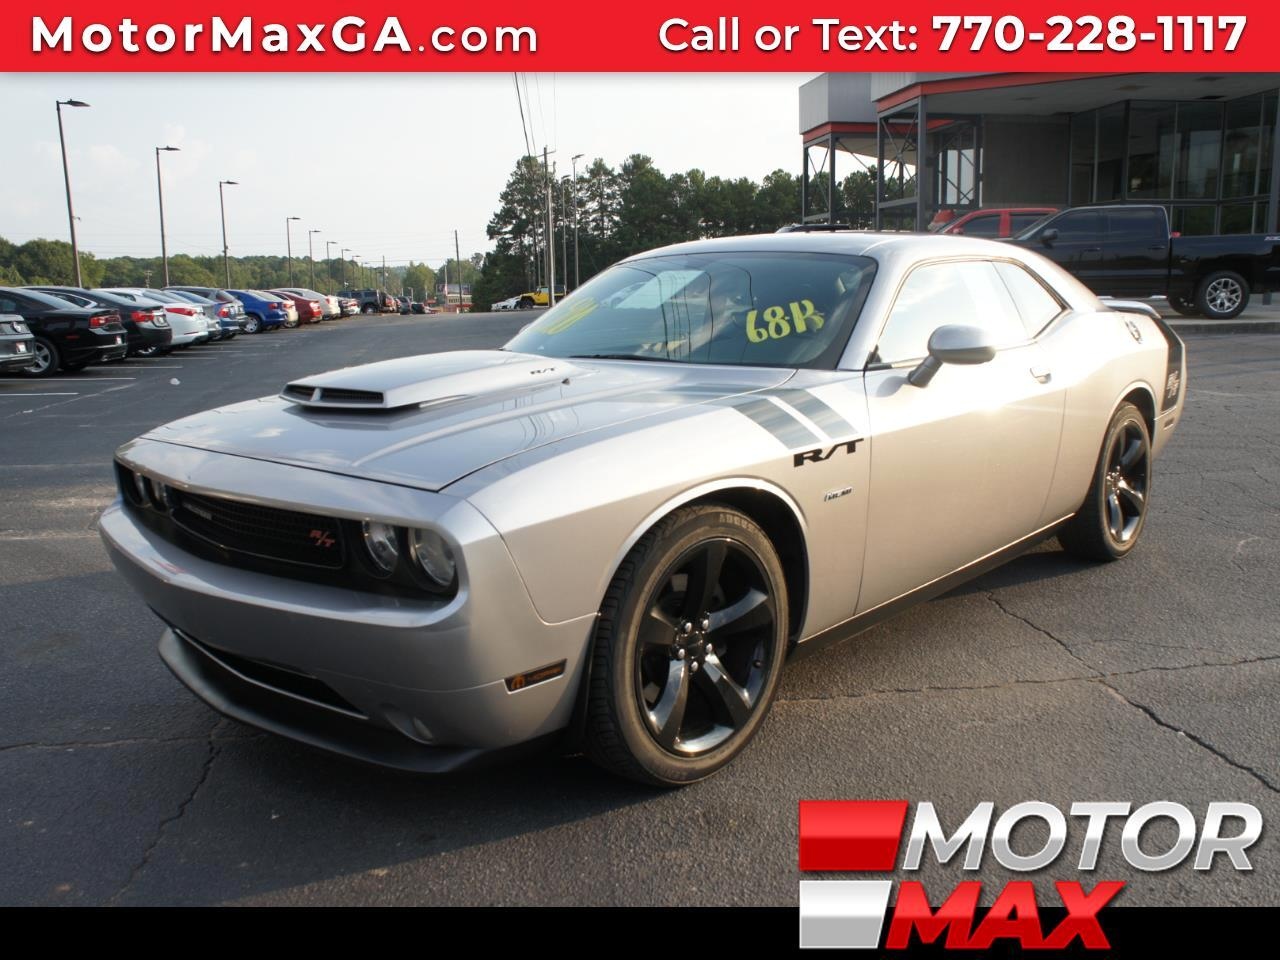 2014 Dodge Challenger For Sale >> Used 2014 Dodge Challenger R T 5 7l Hemi For Sale In Griffin